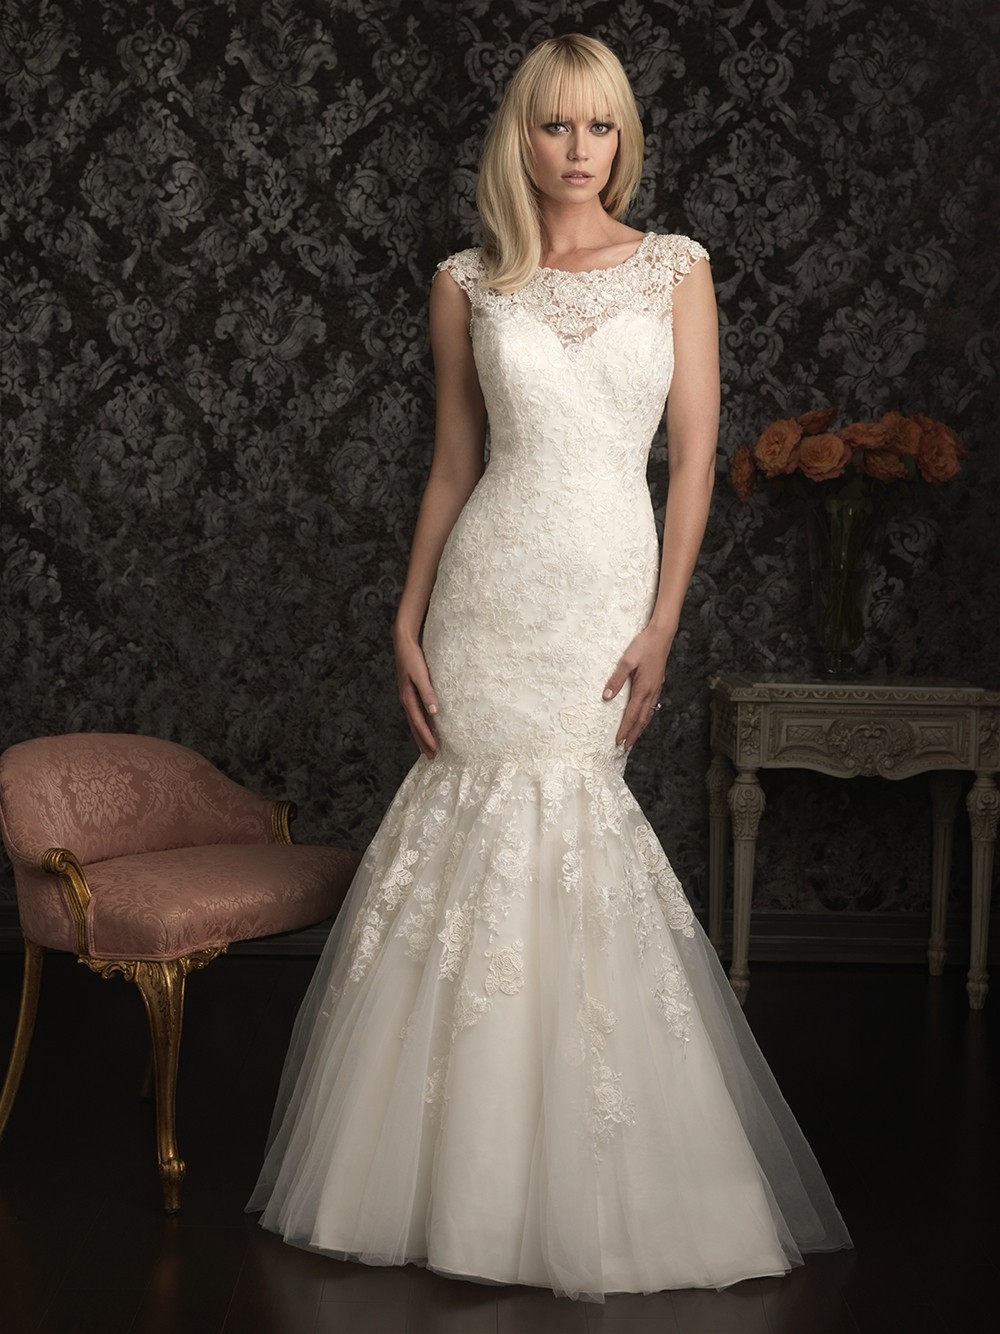 Lace and pearls wedding dress